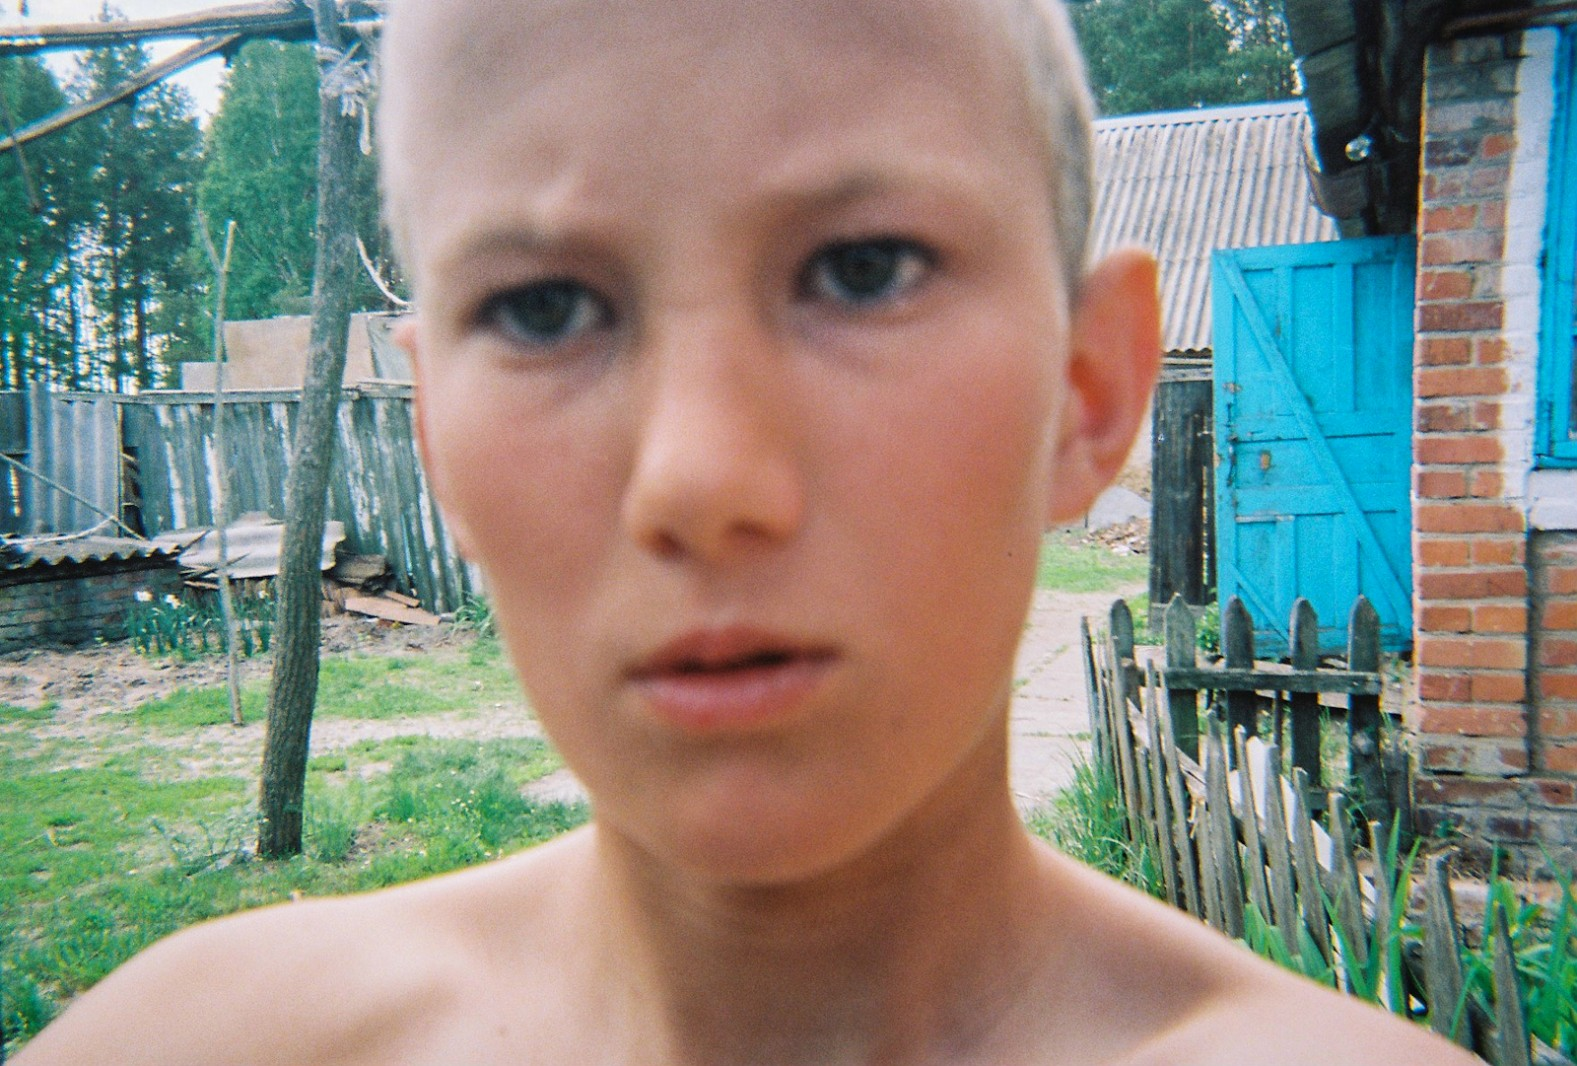 A young boy takes a 'selfie' in outside his house near Chernobyl